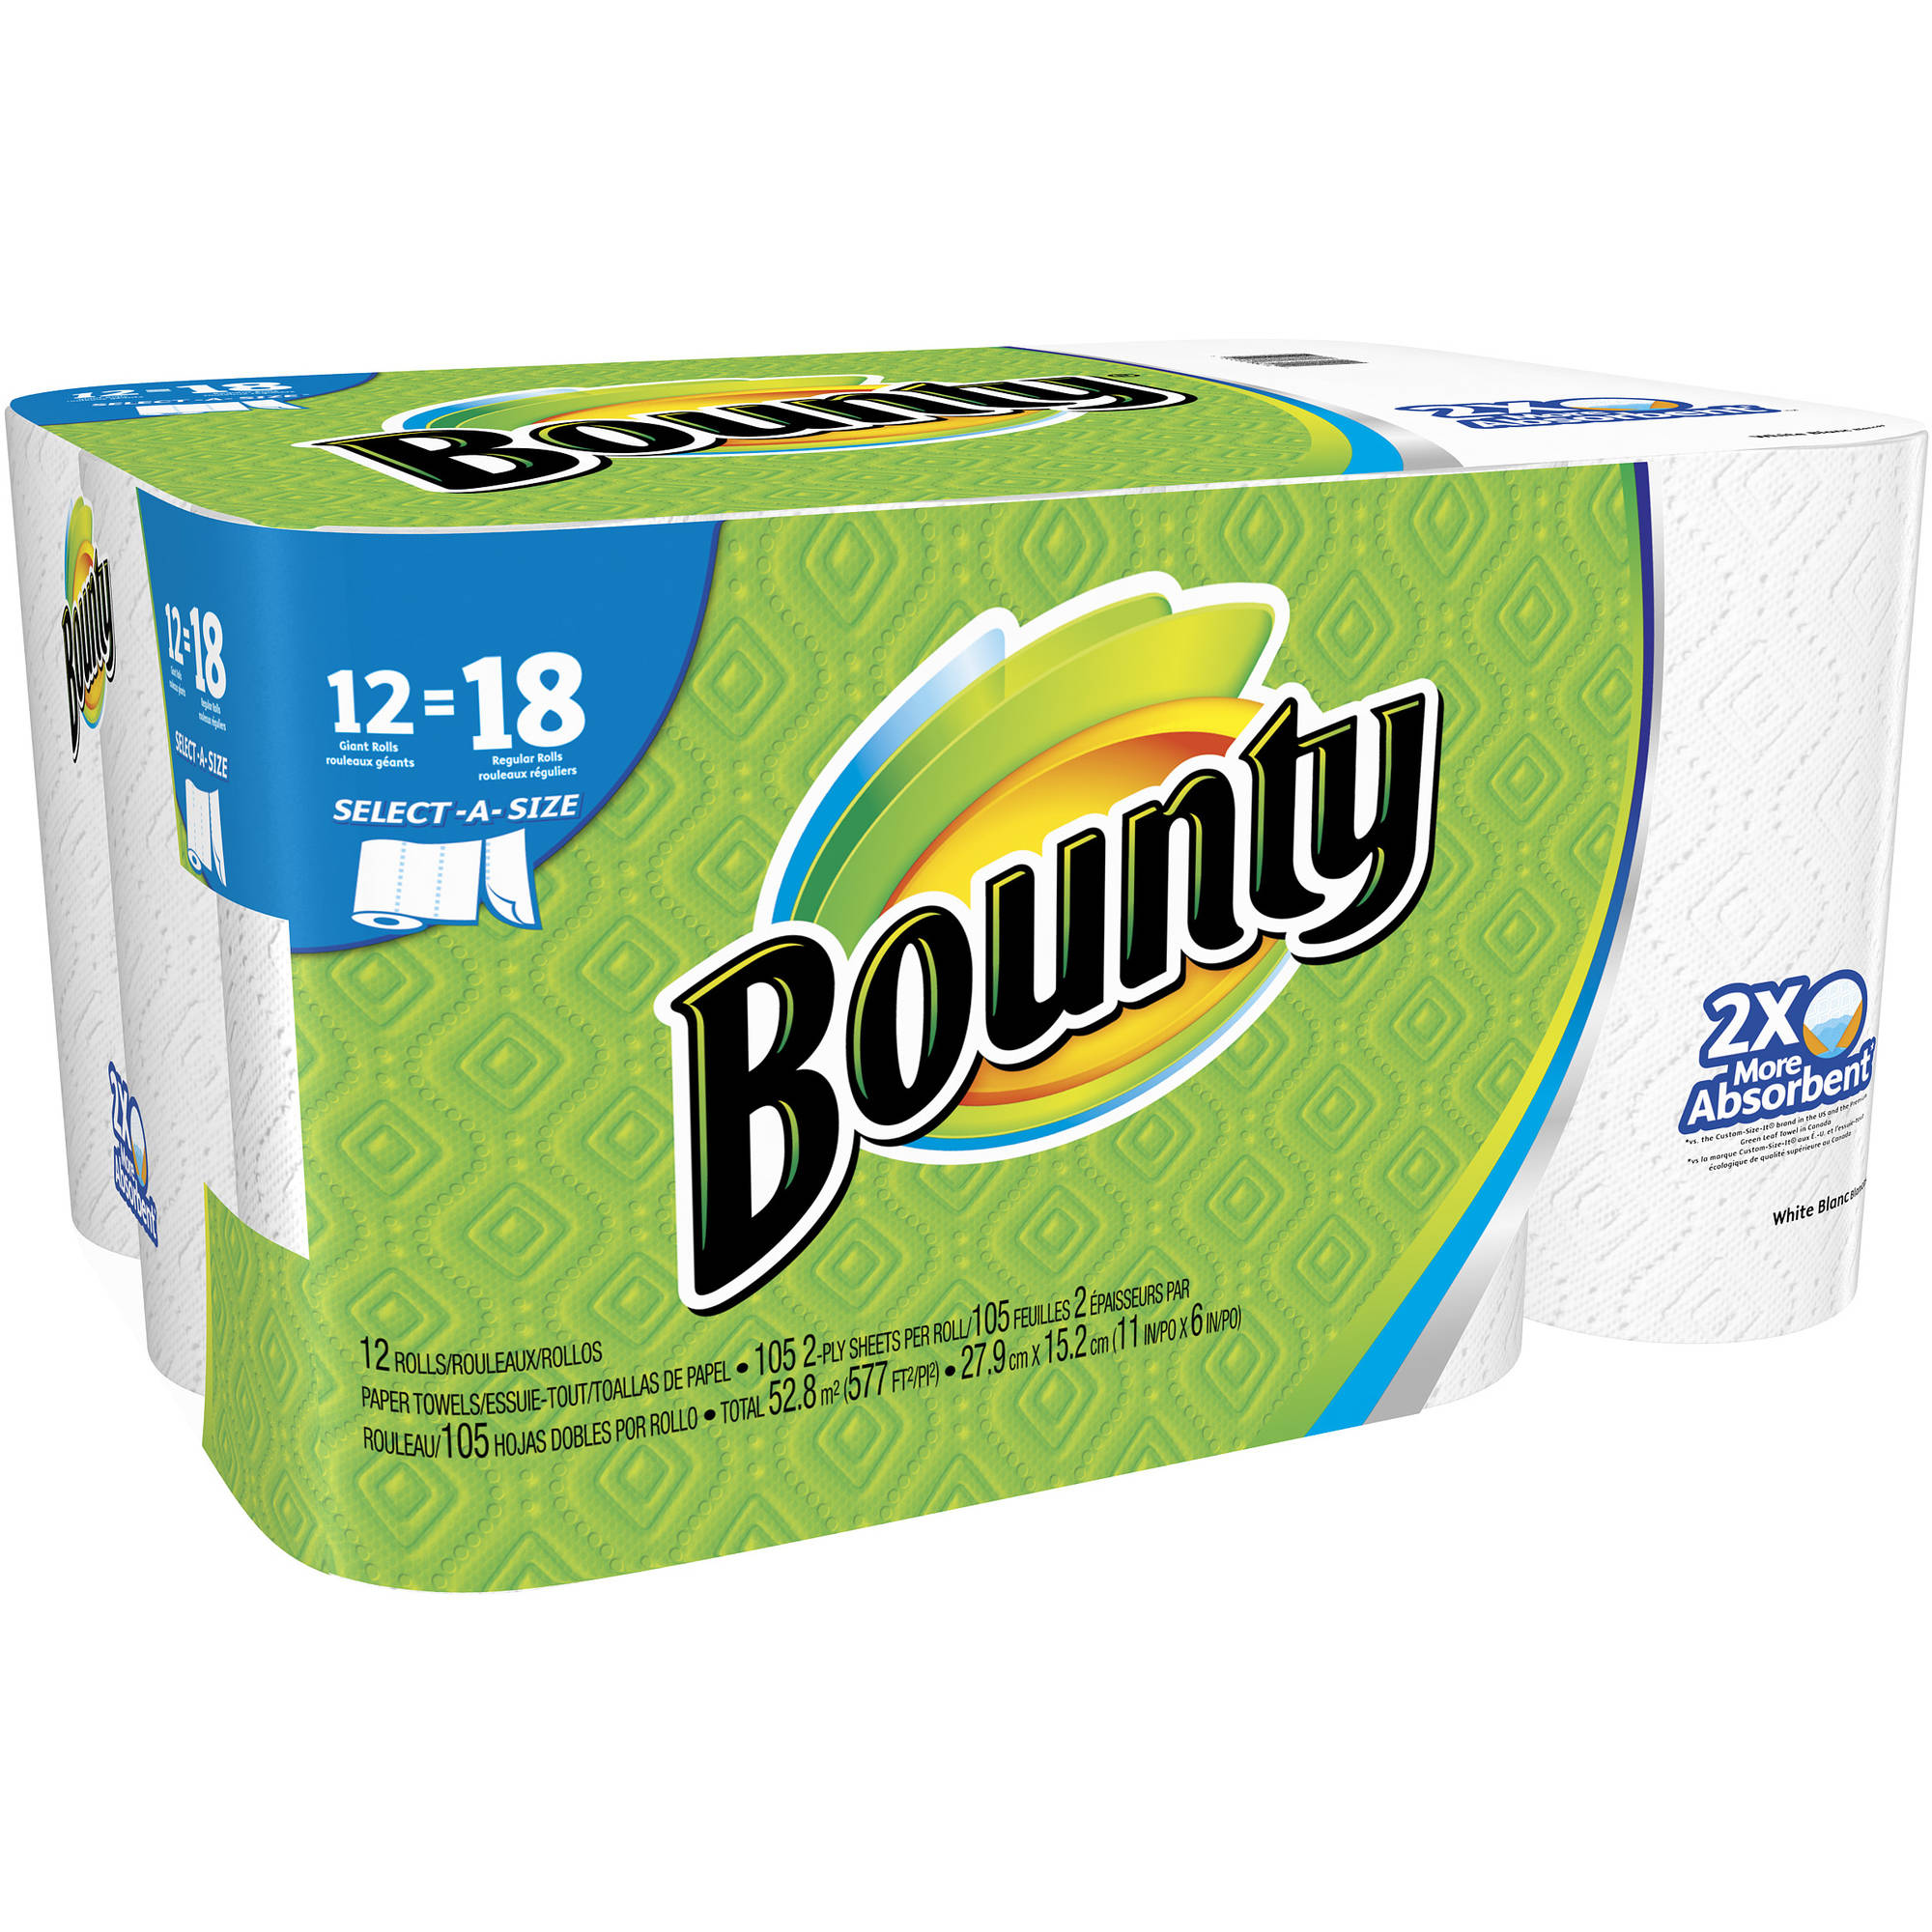 Bounty Select-a-Size Giant Roll Paper Towels, 105 sheets, 12 rolls